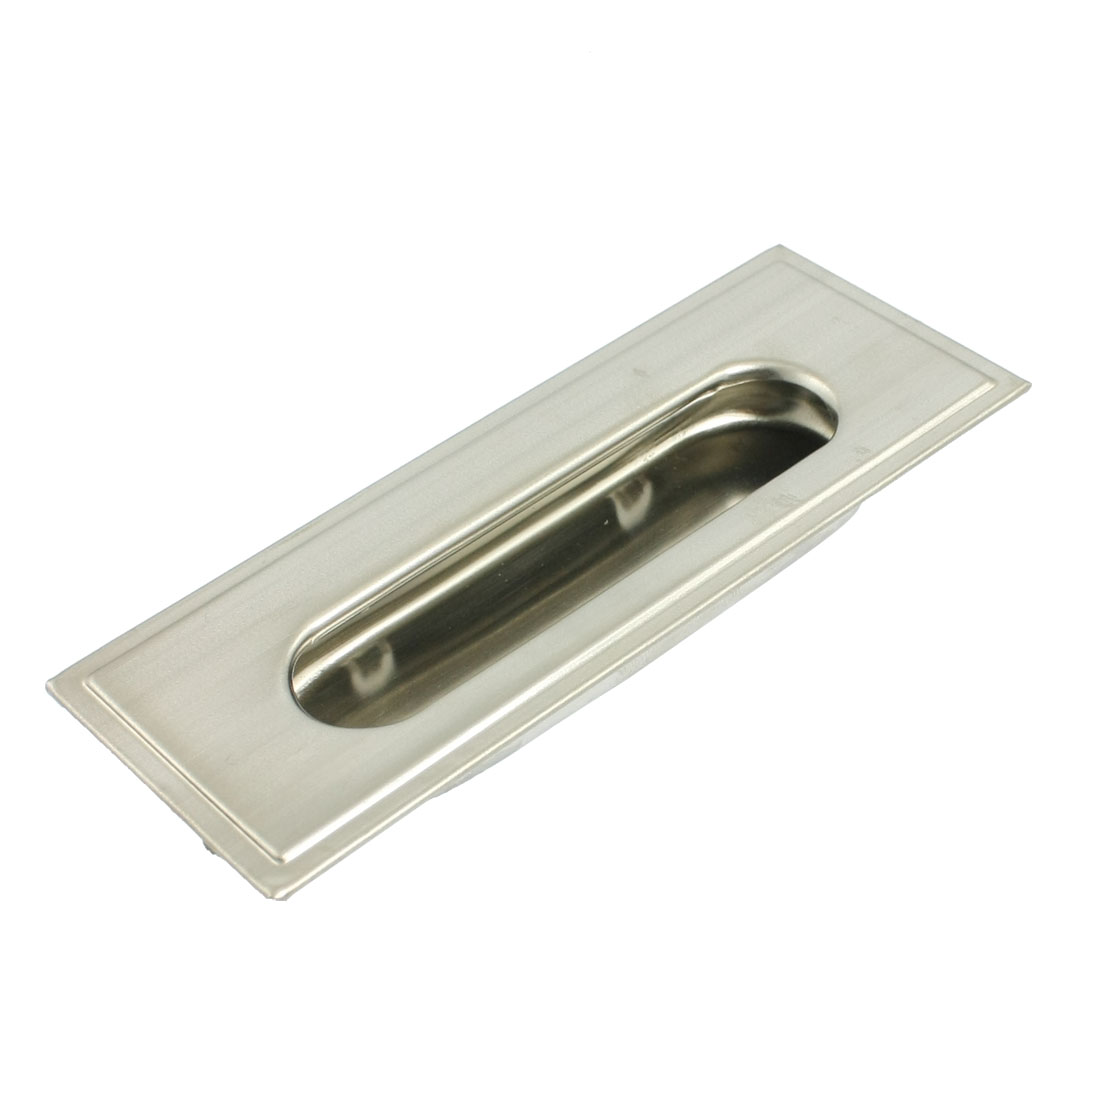 "Concealed Screw Fix Stainless Steel Flush Pull Handle 4.3"" Long"